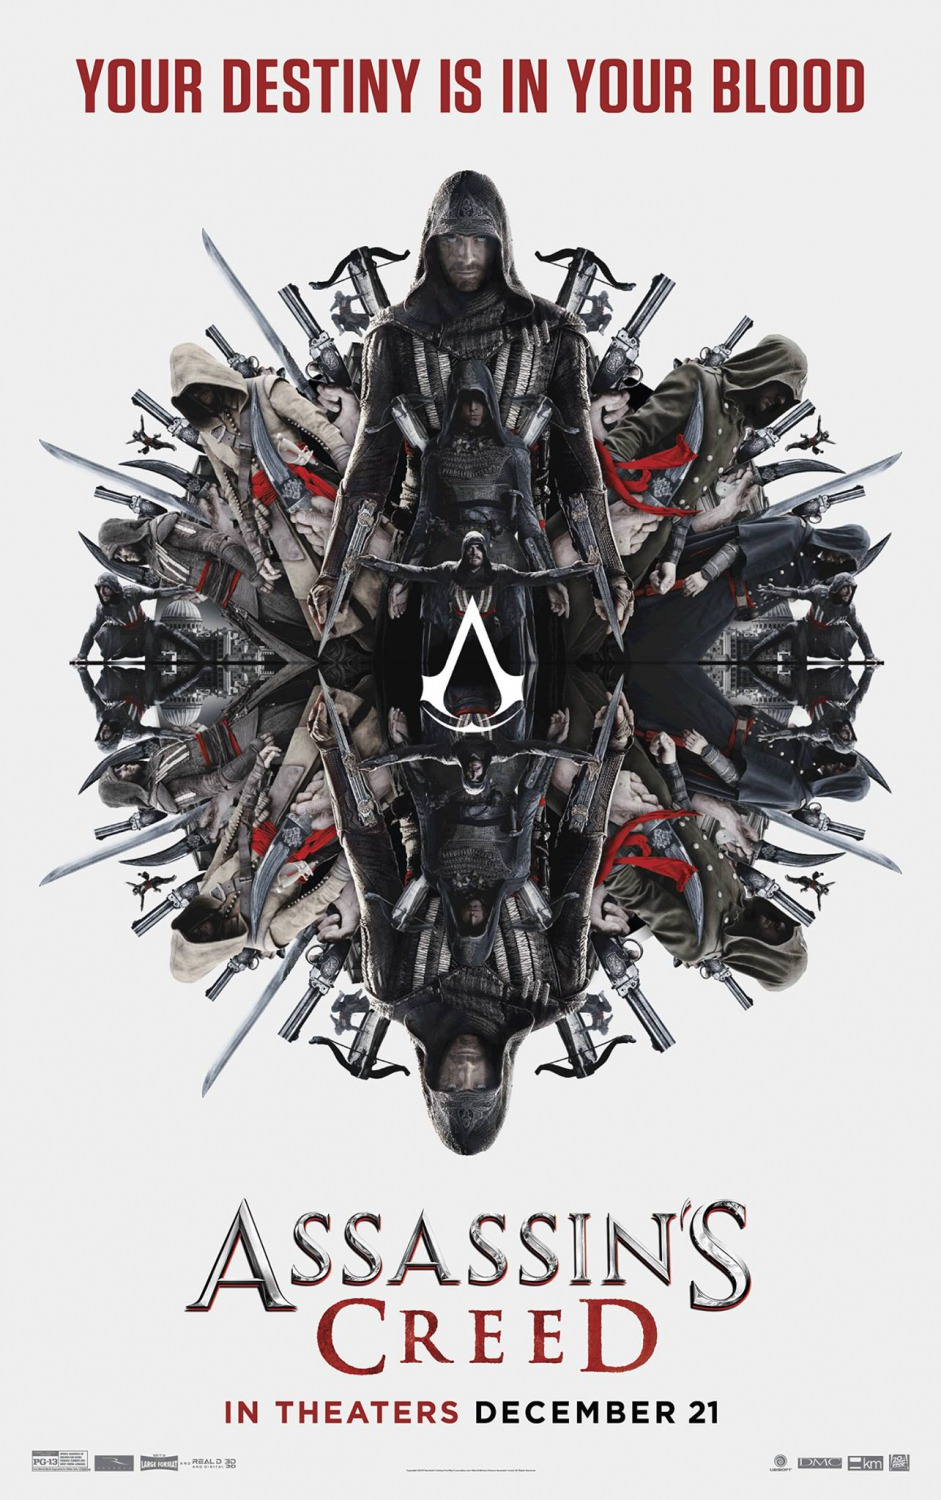 077 - TOP 100 Movie Poster 2016